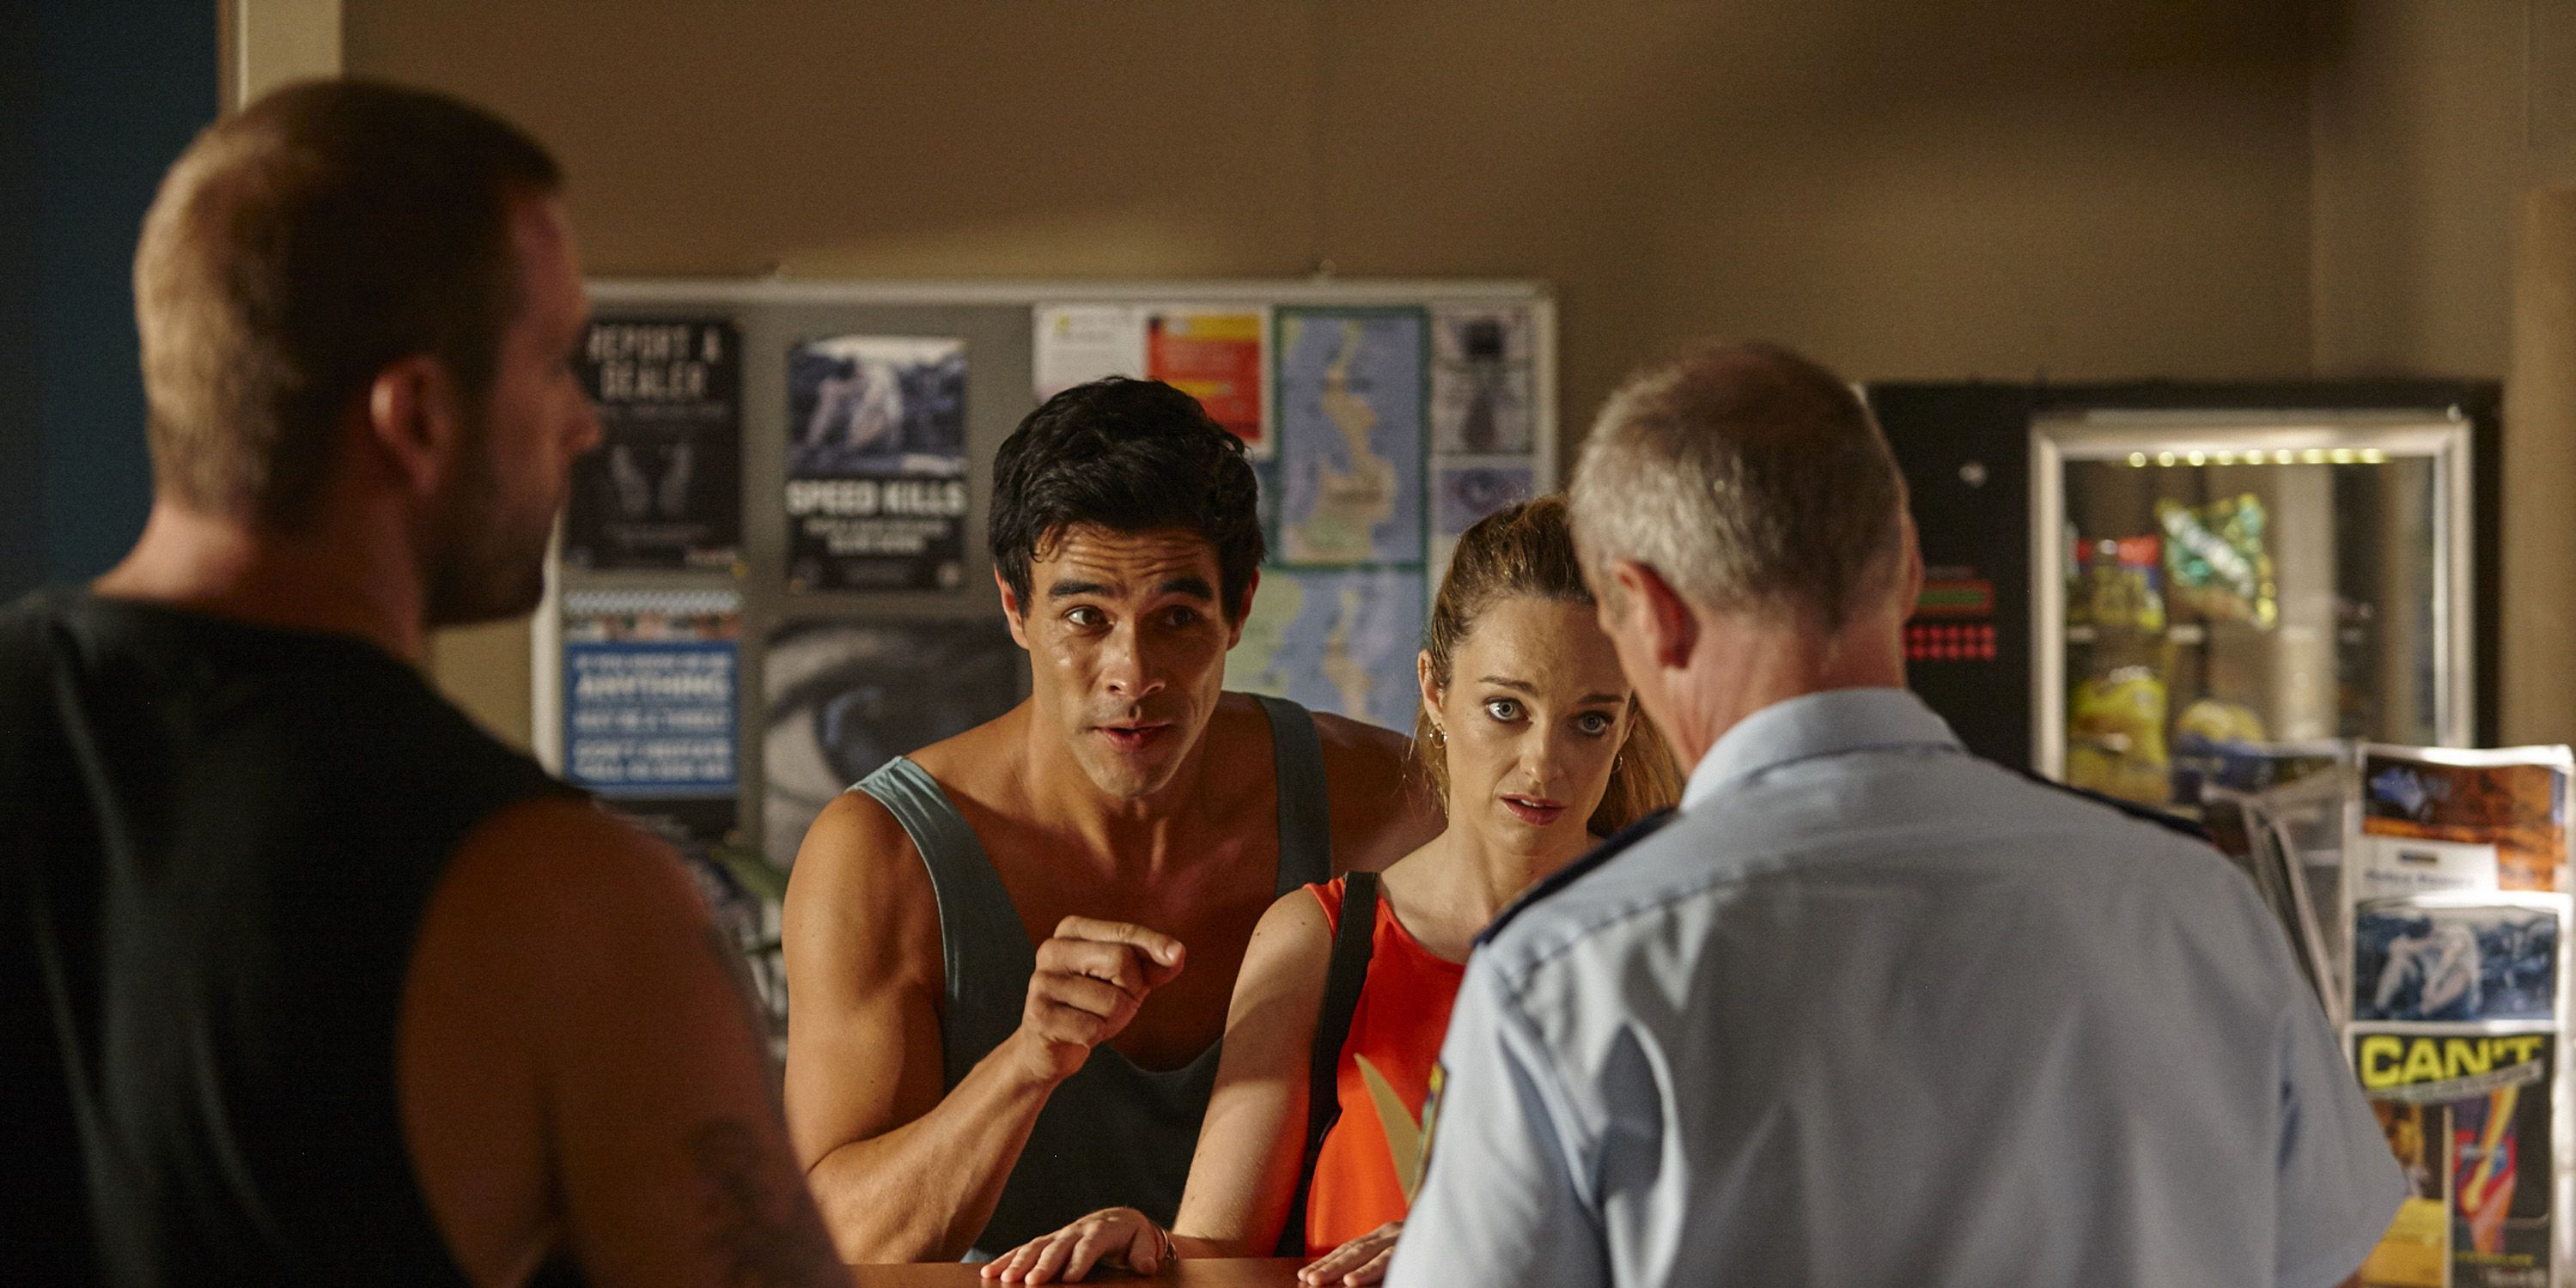 Justin and Tori Morgan show evidence to help Robbo in Home and Away